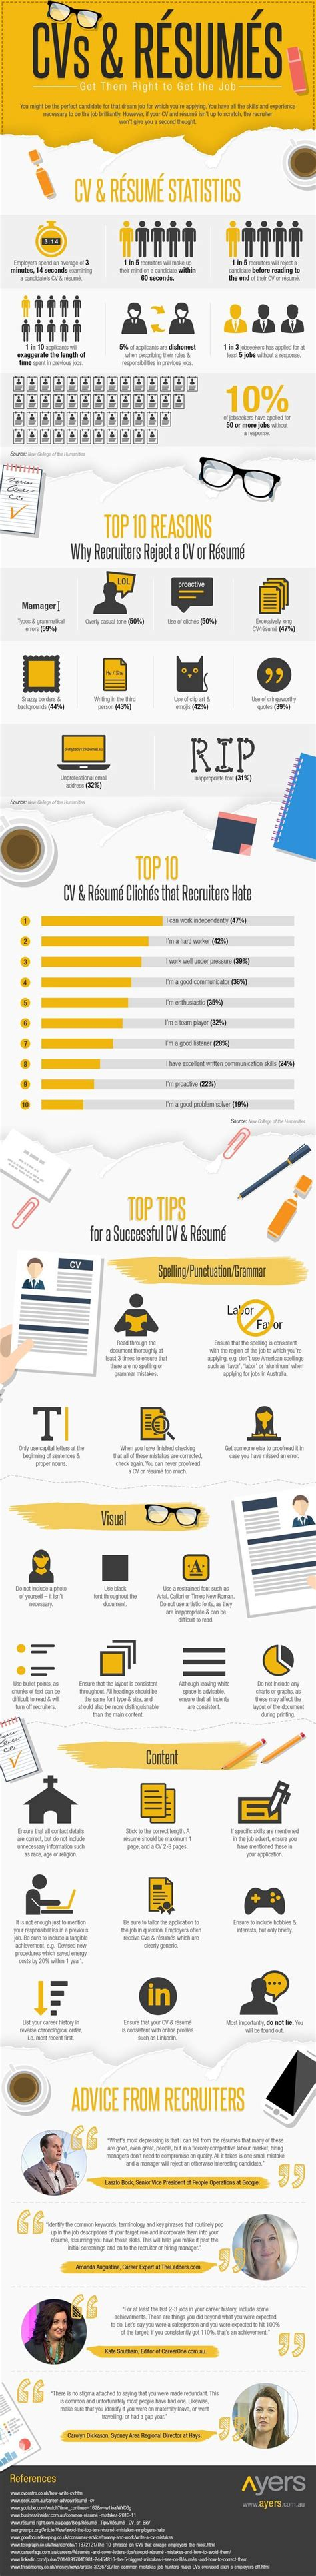 1000+ Images About Infographic Visual Resumes On Pinterest